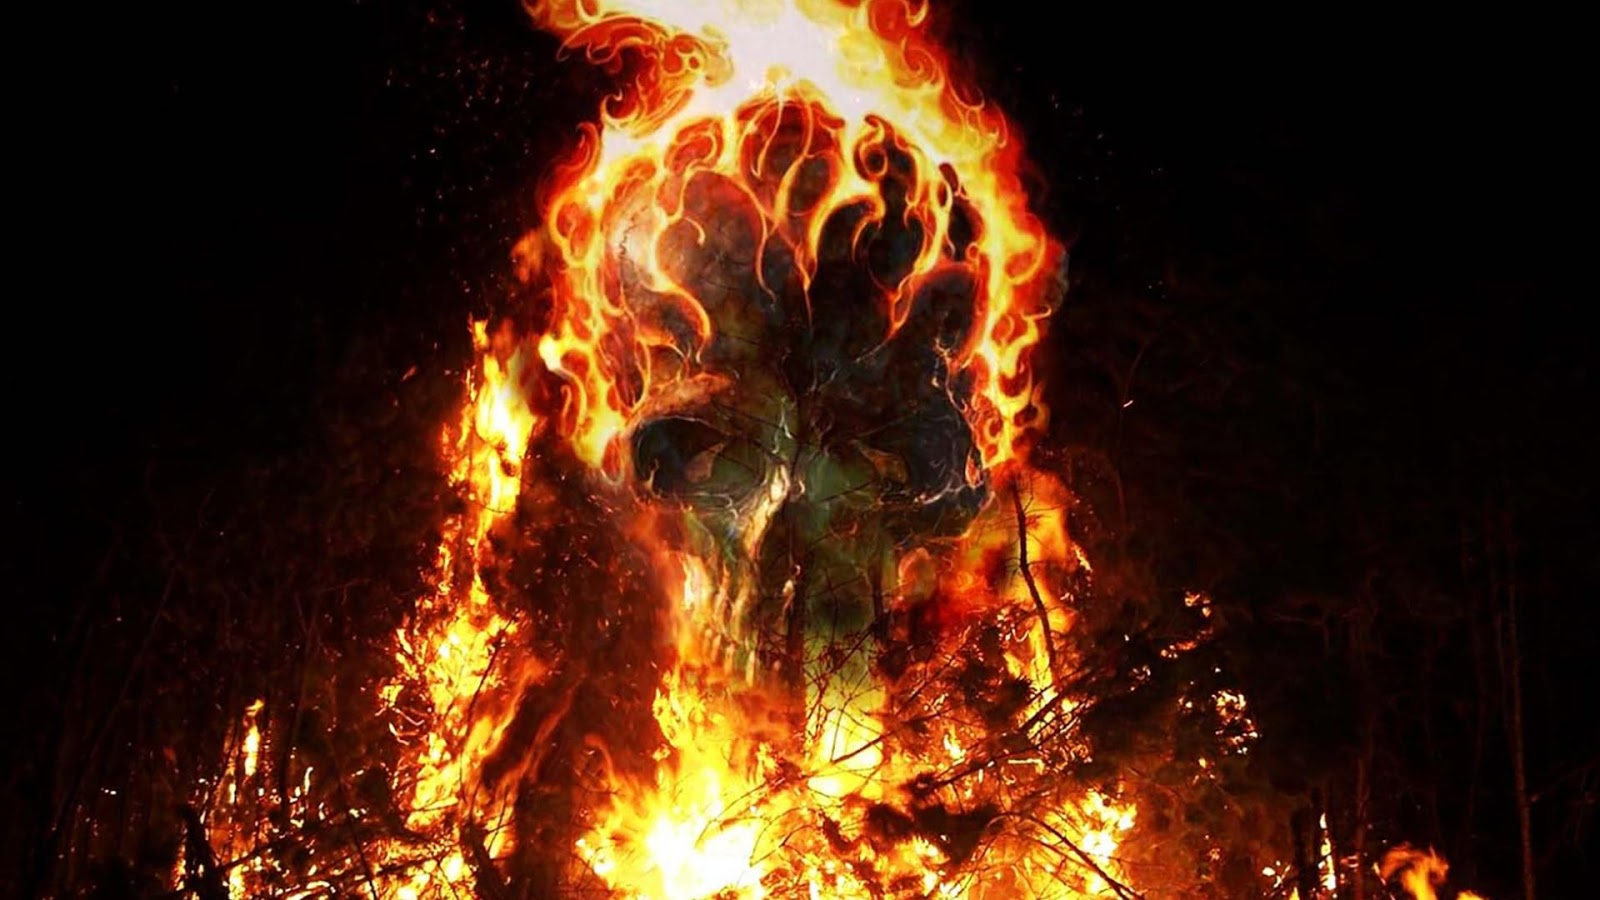 Fire Skulls Live Wallpaper - Android Apps on Google Play